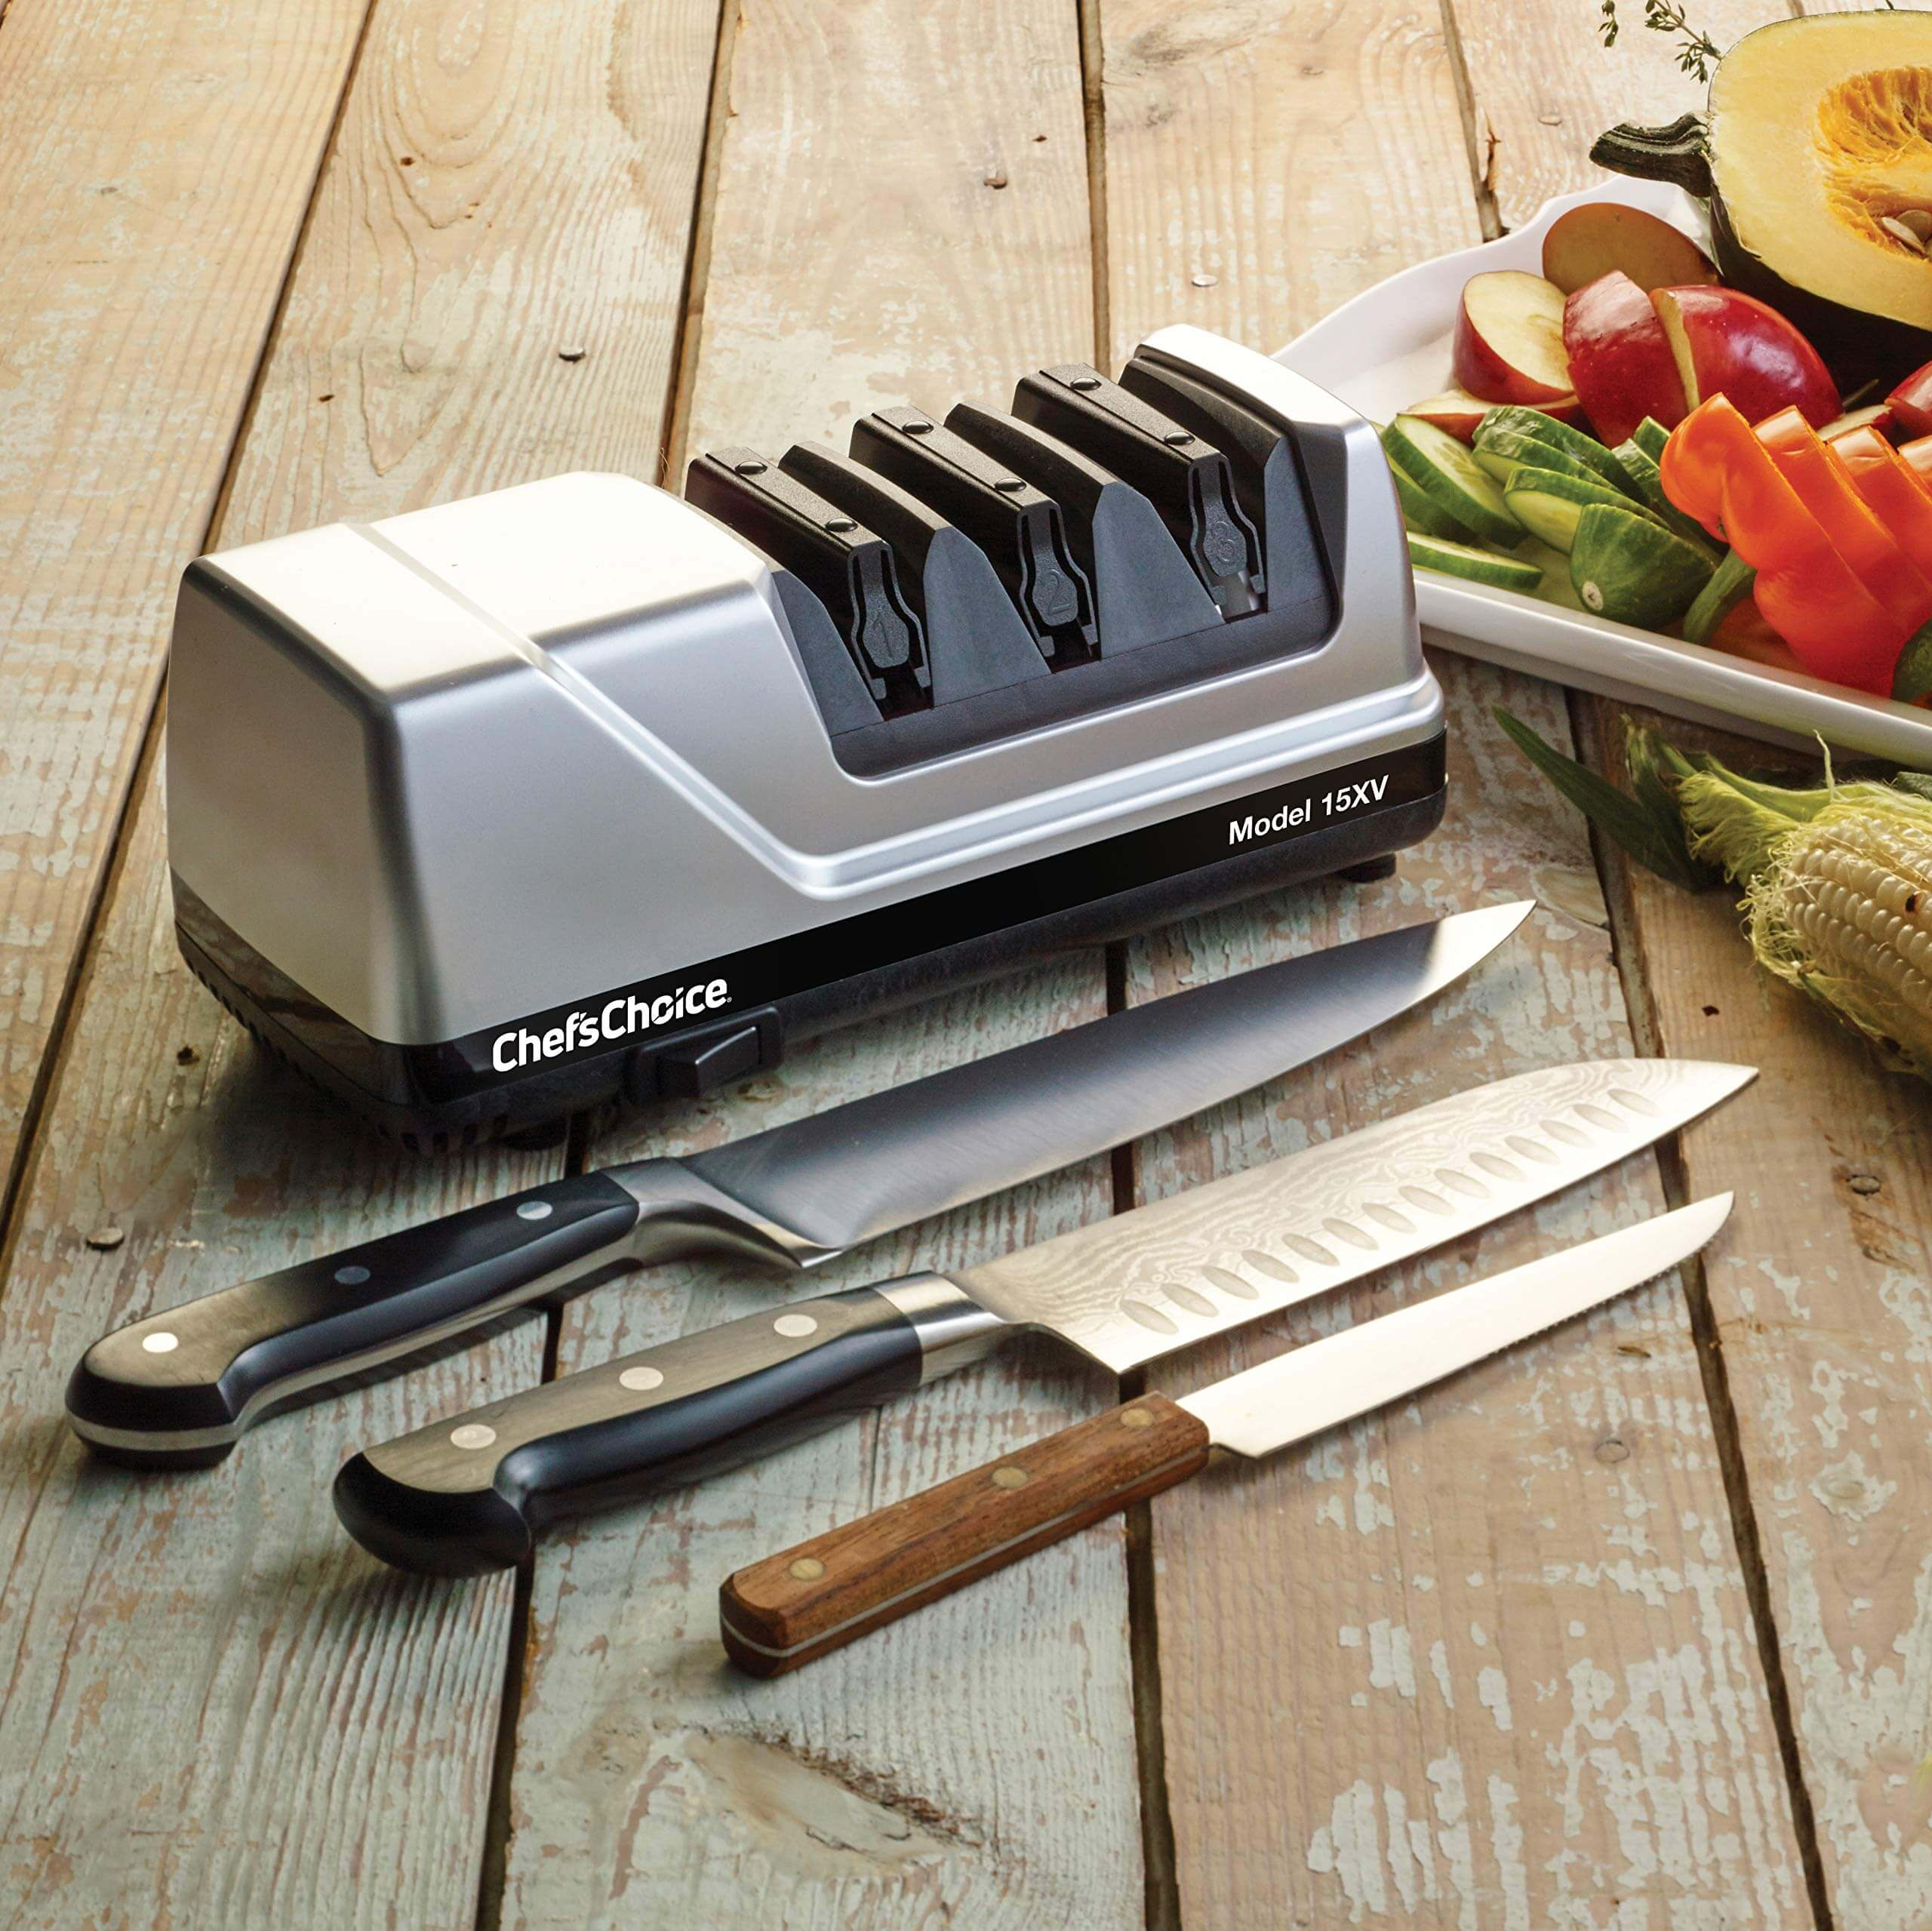 electric knife sharpener reviews, best electric knife sharpener, chef's choice trizor xv knife sharpener